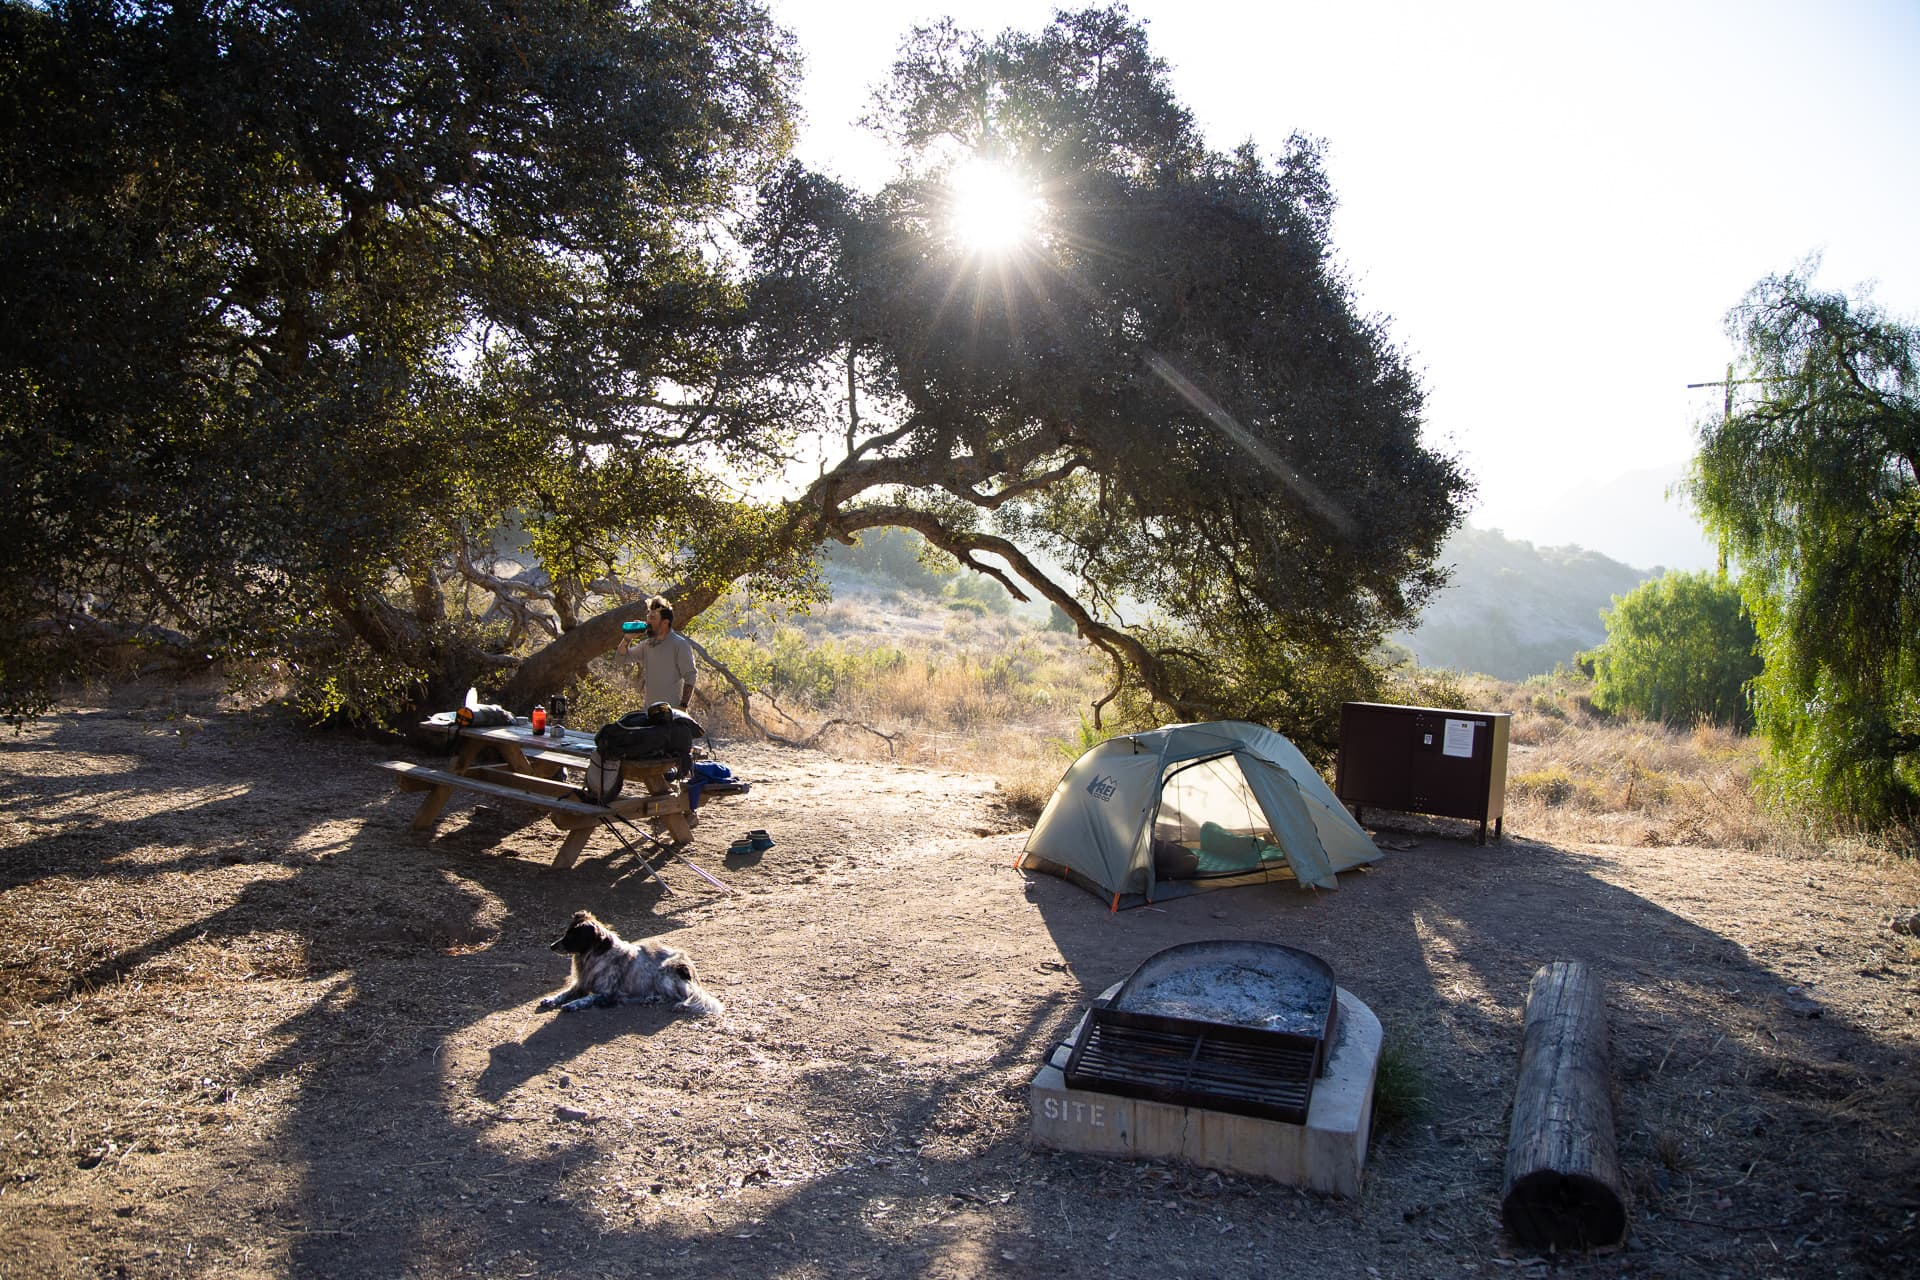 Black Jack Campground // Plan a backpacking trip on the Trans-Catalina Trail on Catalina Island with this trail guide with tips on the best campsites, water availability, gear & more